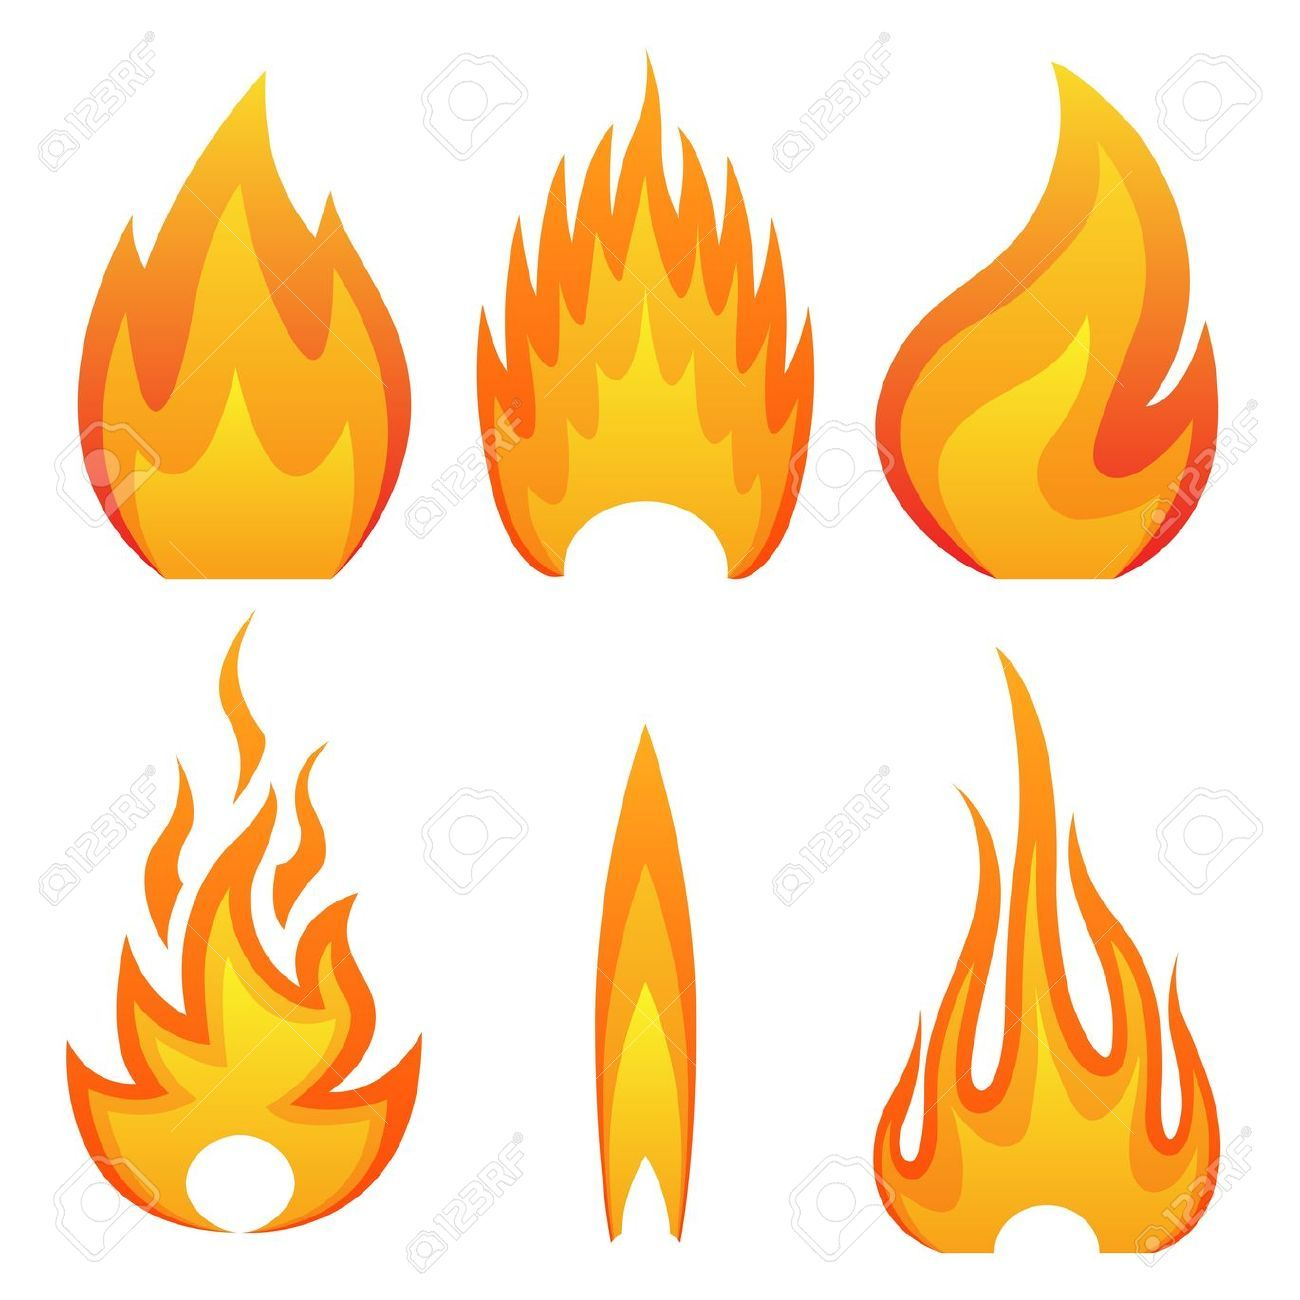 Fire Flame Stock Illustrations, Cliparts And Royalty Free.